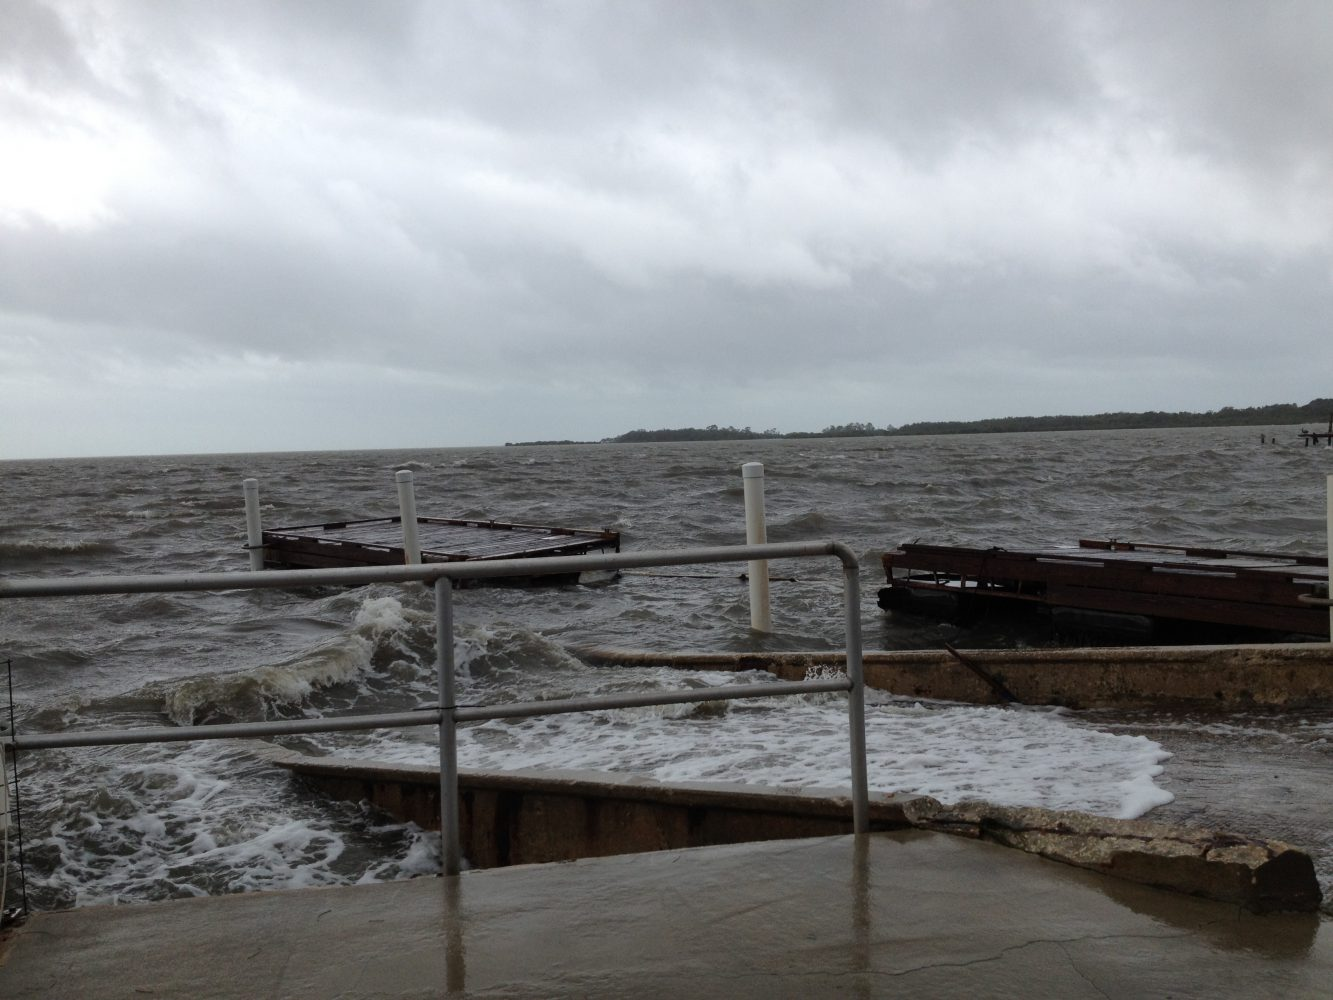 Floating docks being swept away by strong waves from Tropical Storm Debby